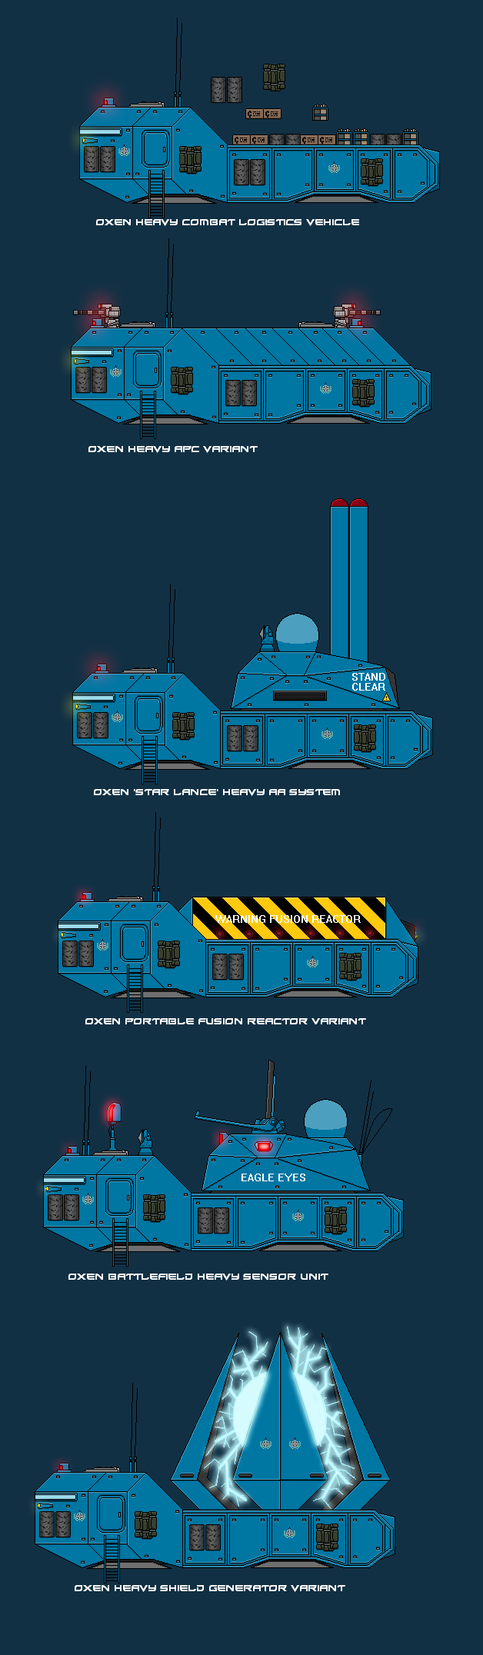 Oxen Heavy Logistics Vehicle by EmperorMyric